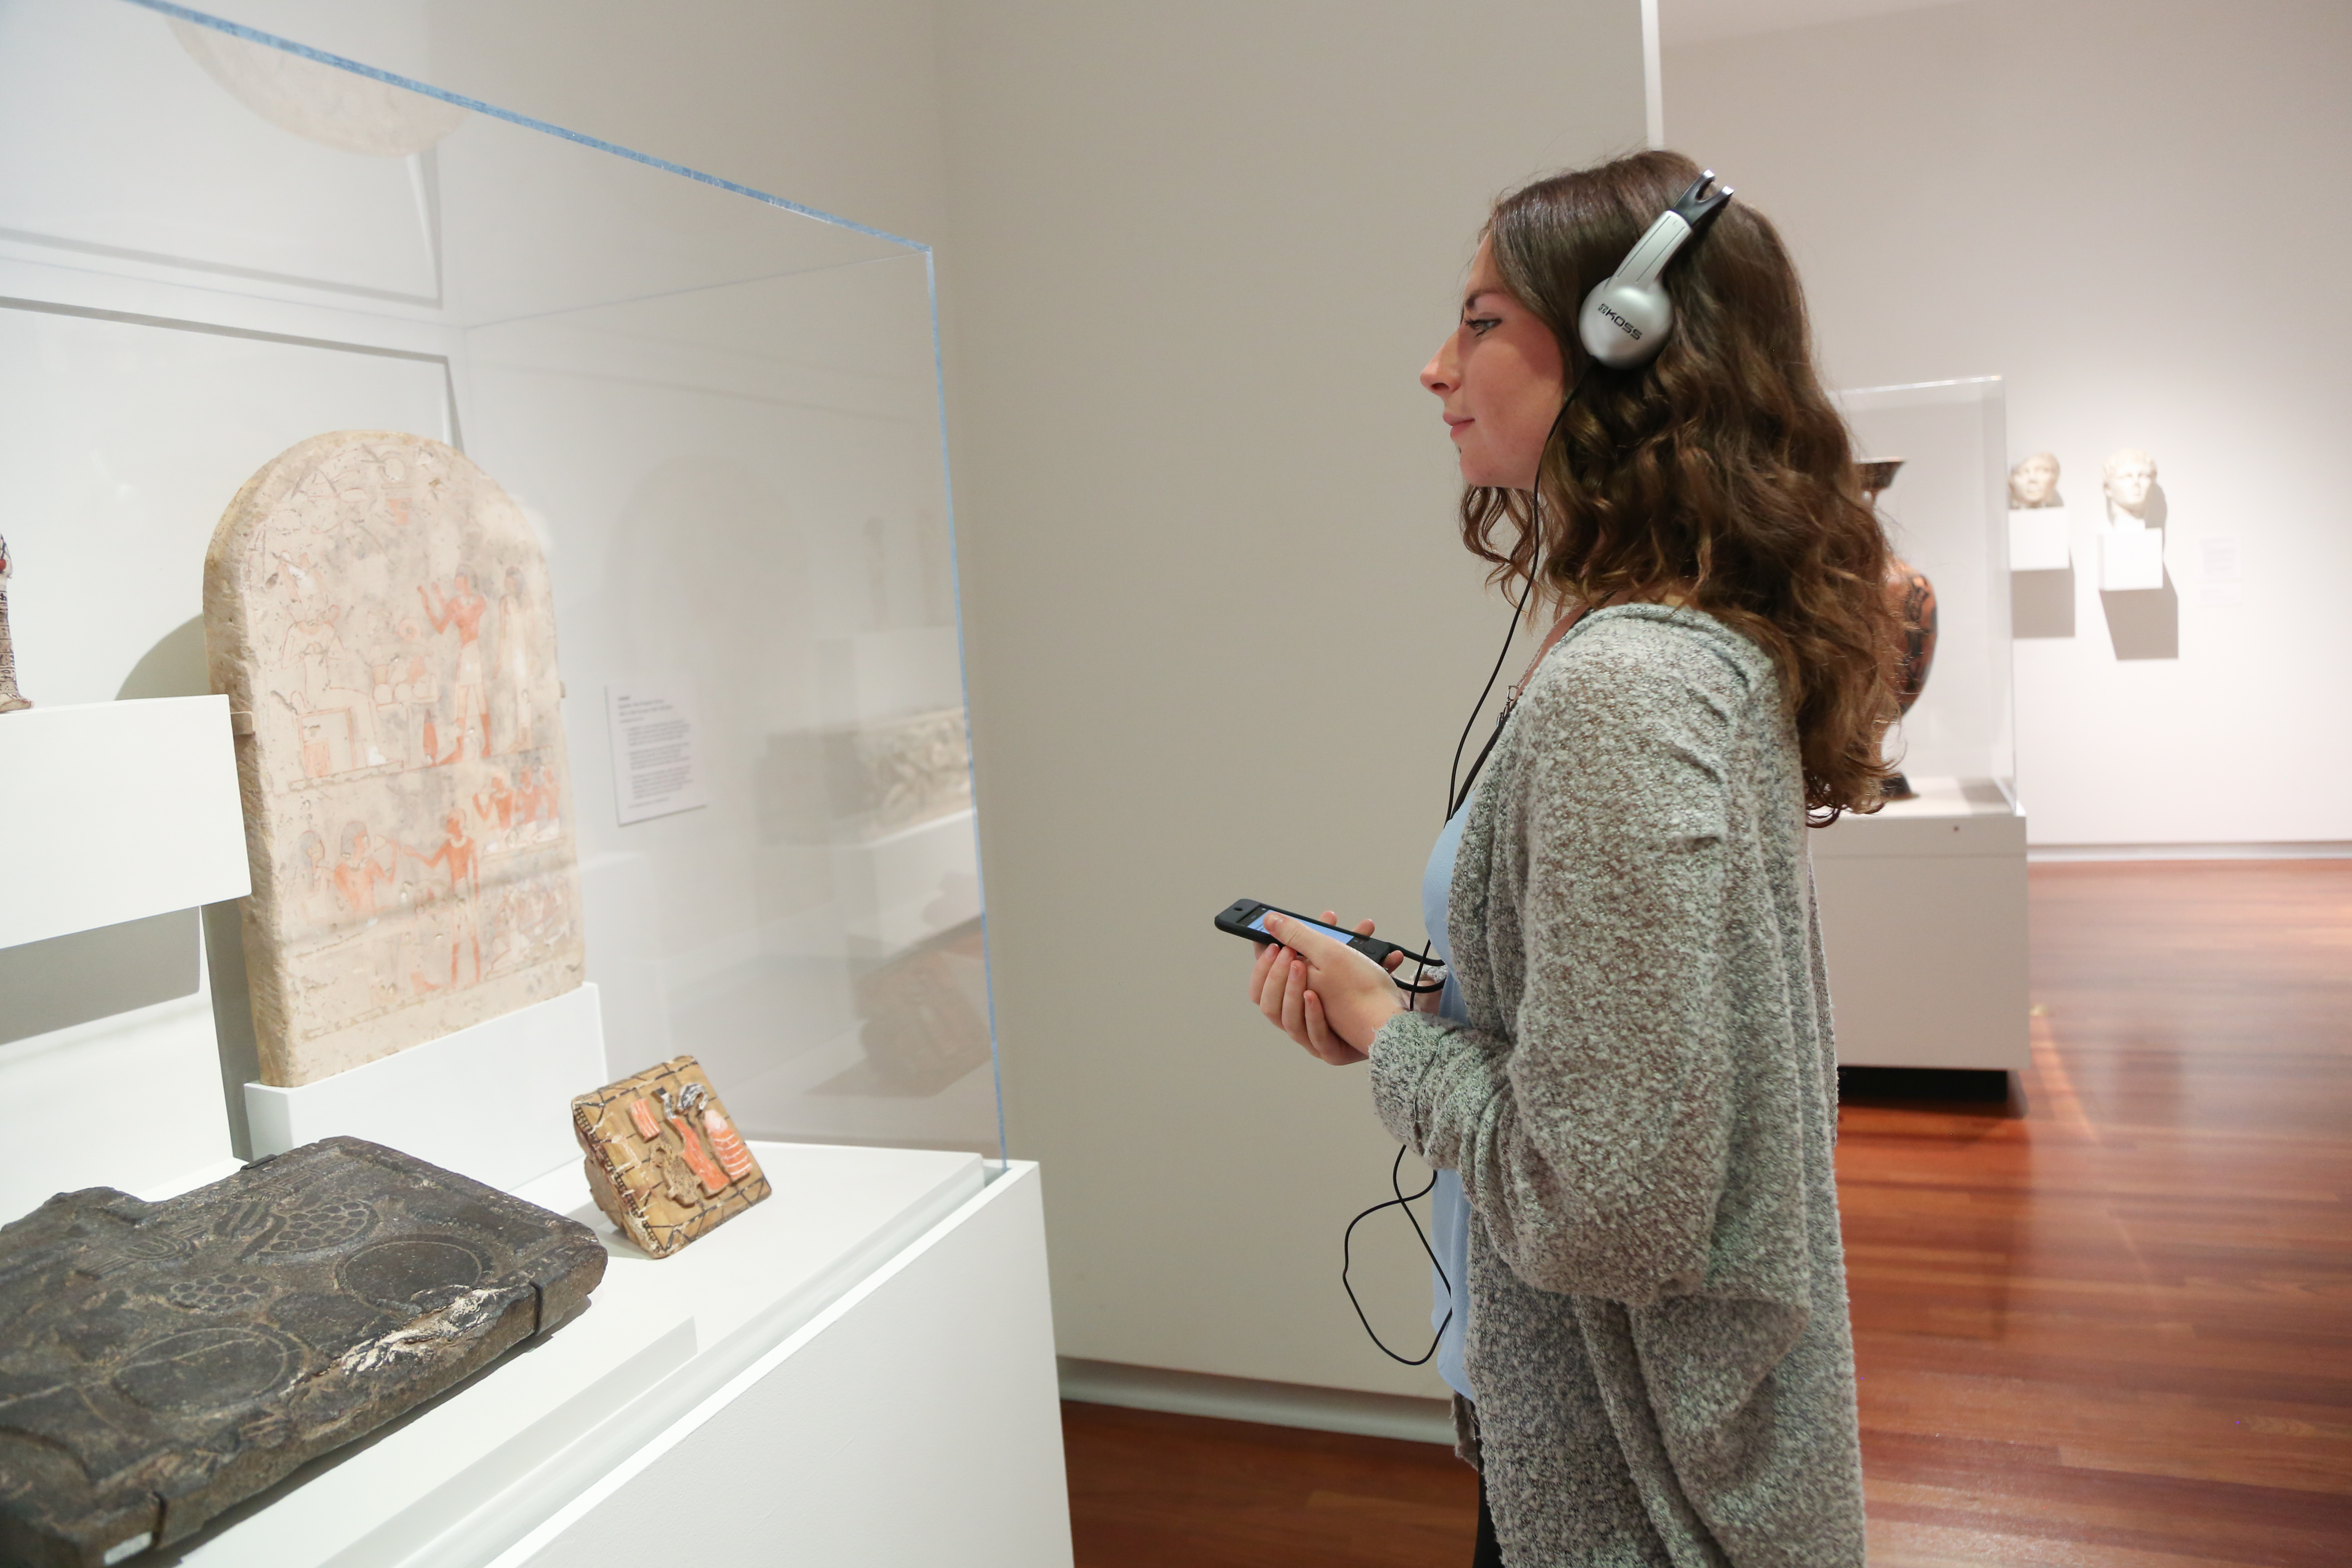 Woman listens to audio about a work of art.